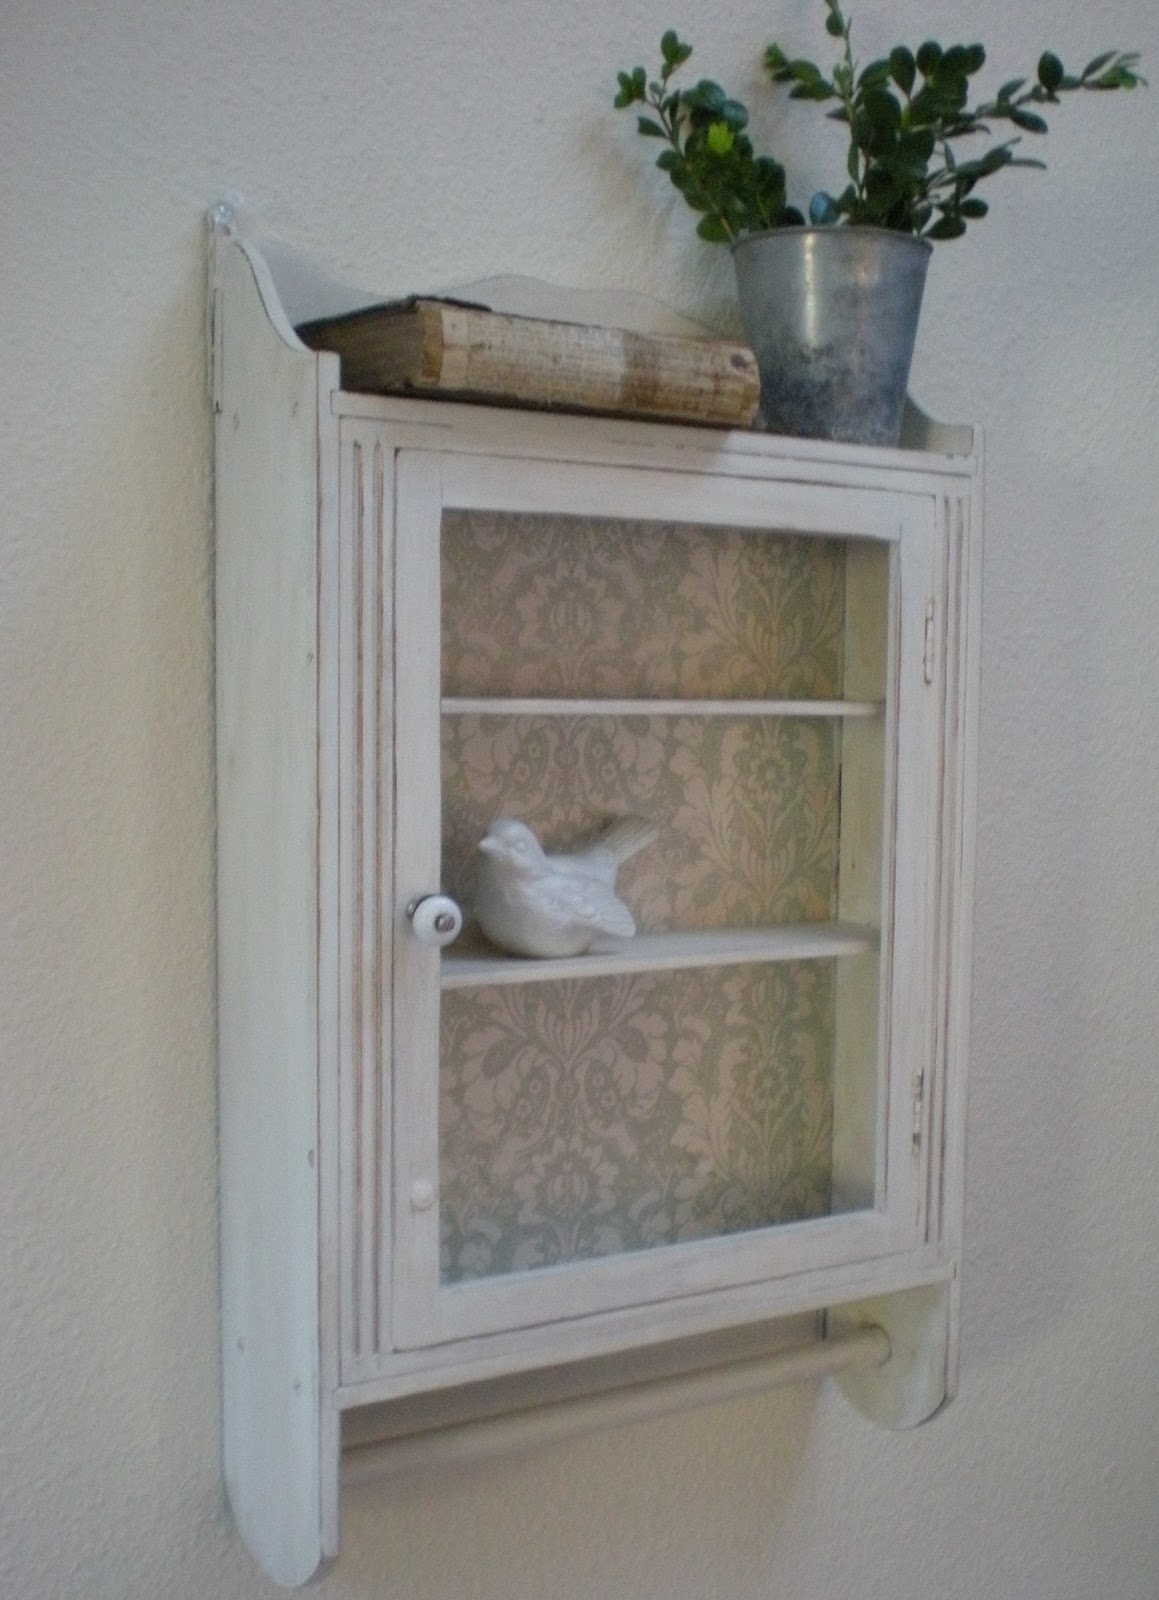 Reloved Rubbish: Tutorial Tuesday: Wall Cabinet From Drab to Fab